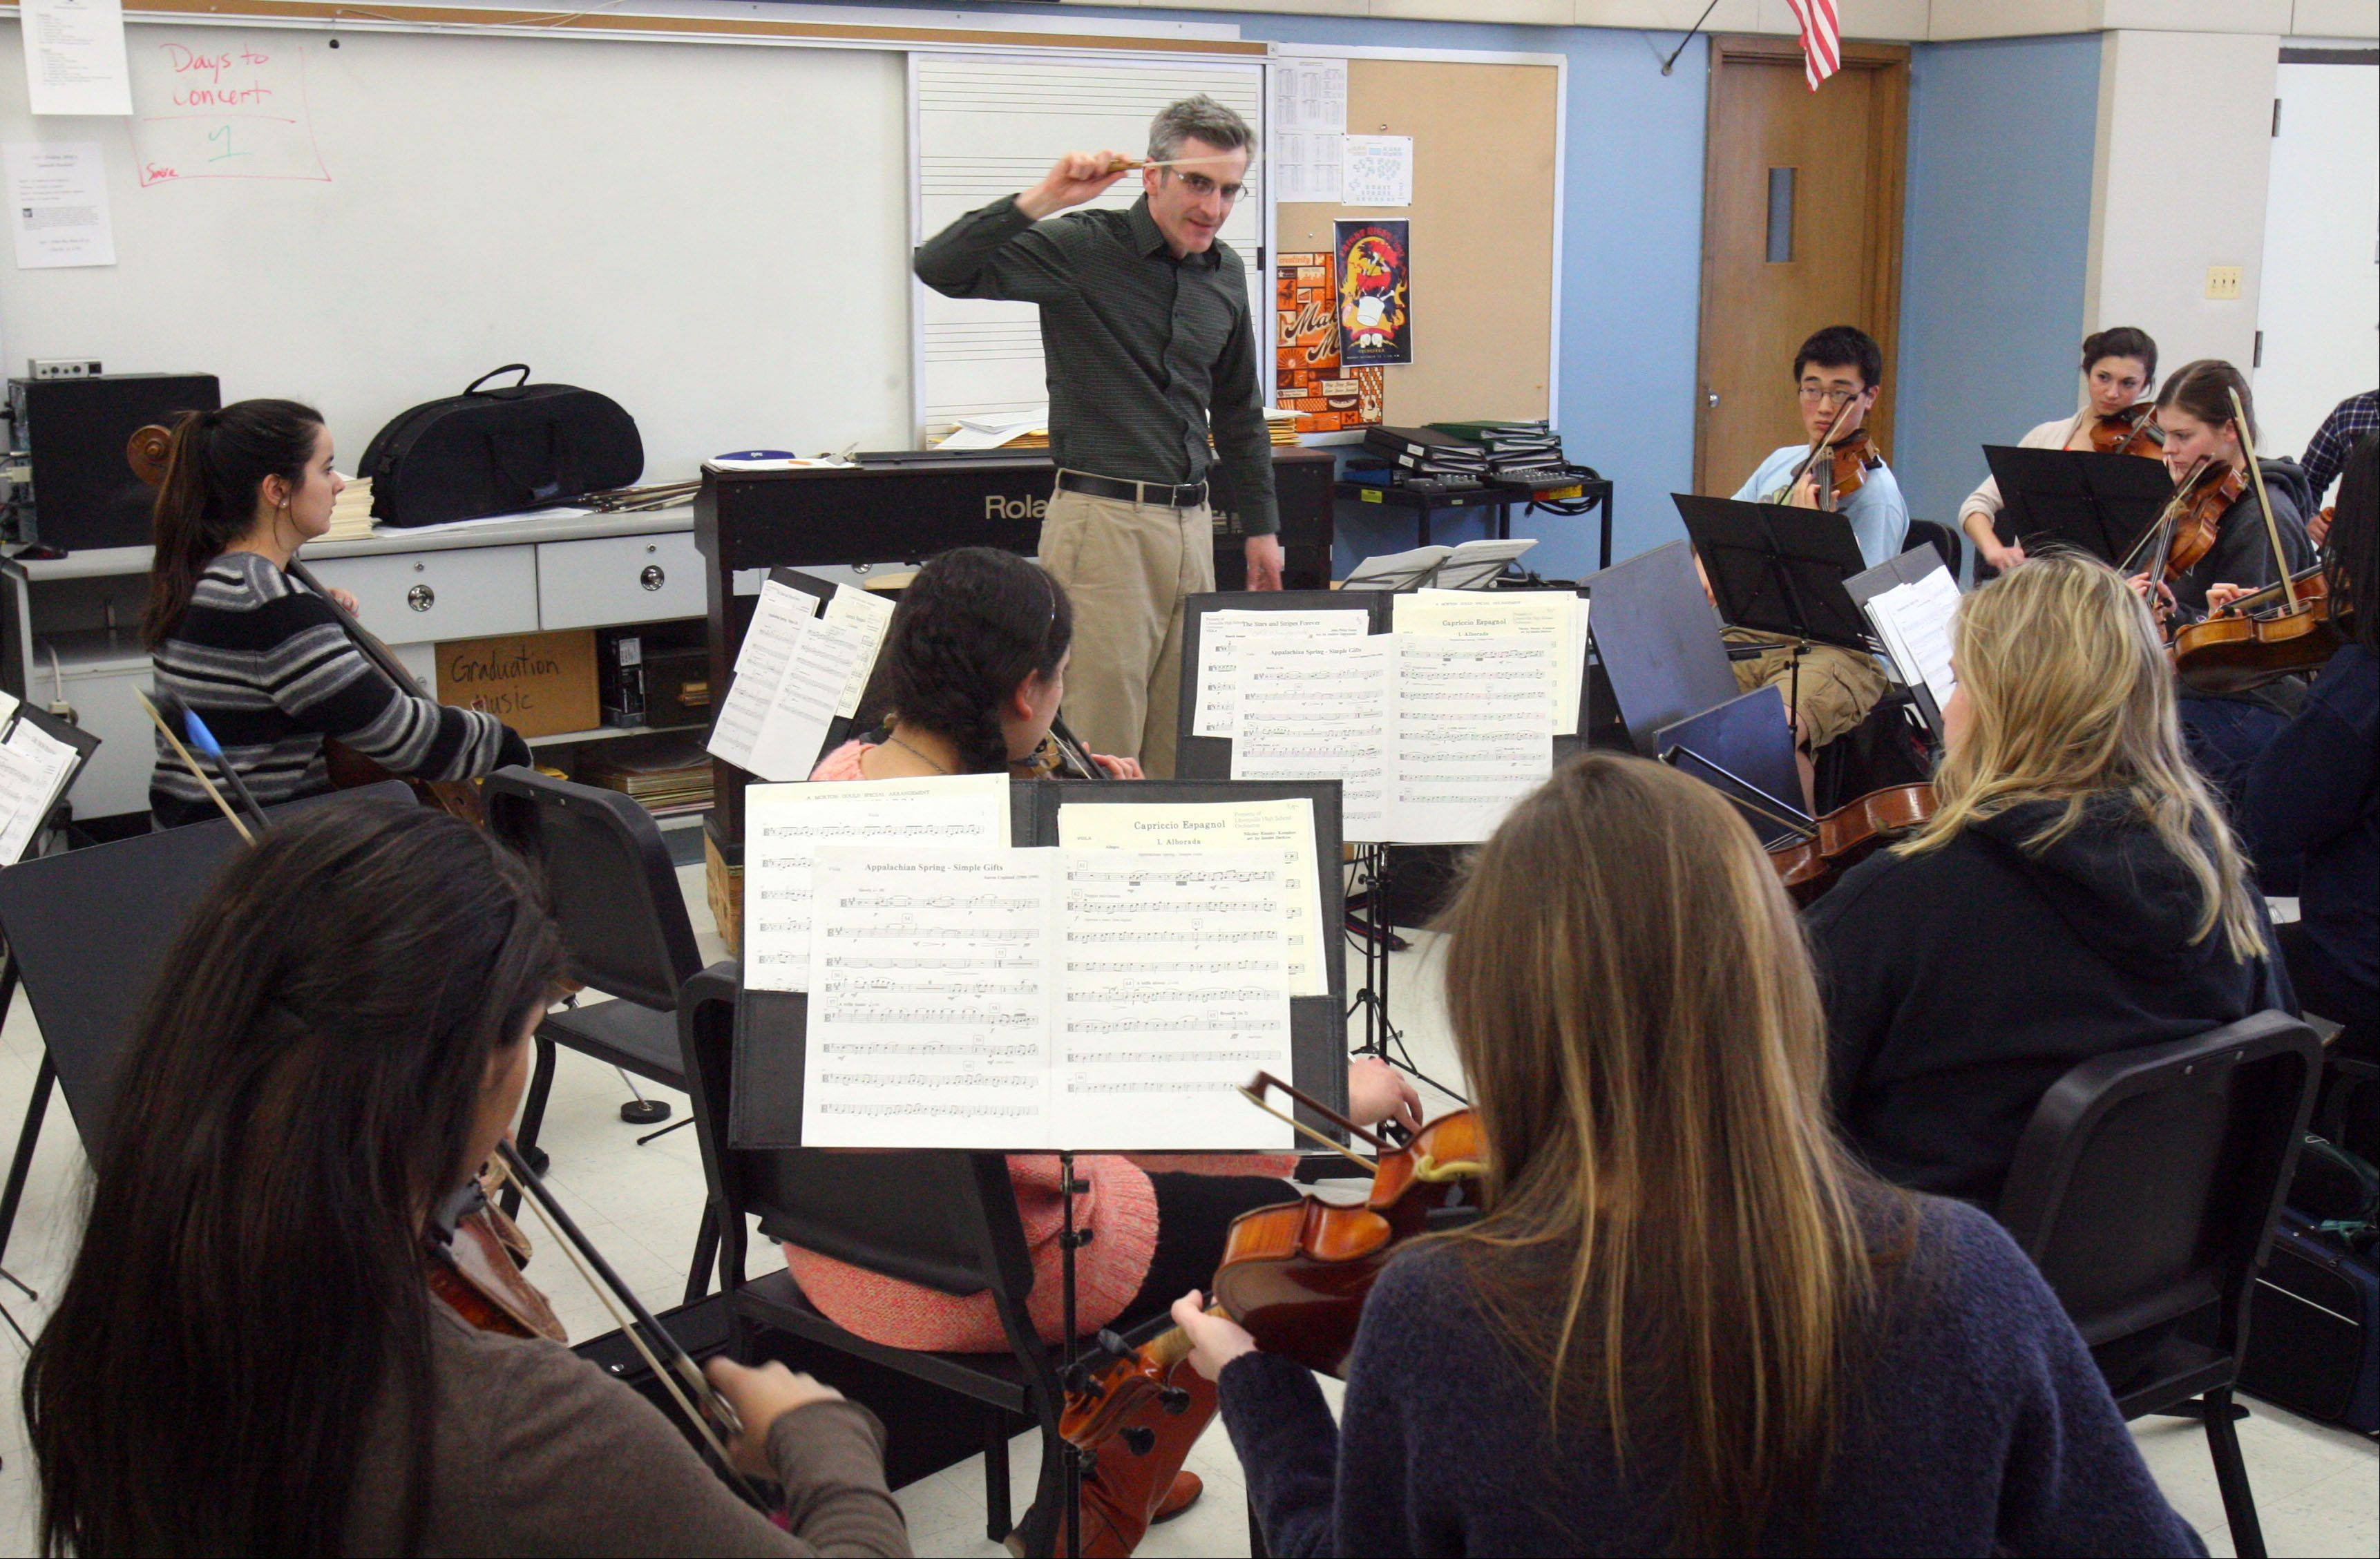 Libertyville High School orchestra director Jeremy Marino leads musicians as they rehearse for their trip to Cuba. The school's musicians have performed around the world through the years, but this is the first trip to Cuba.